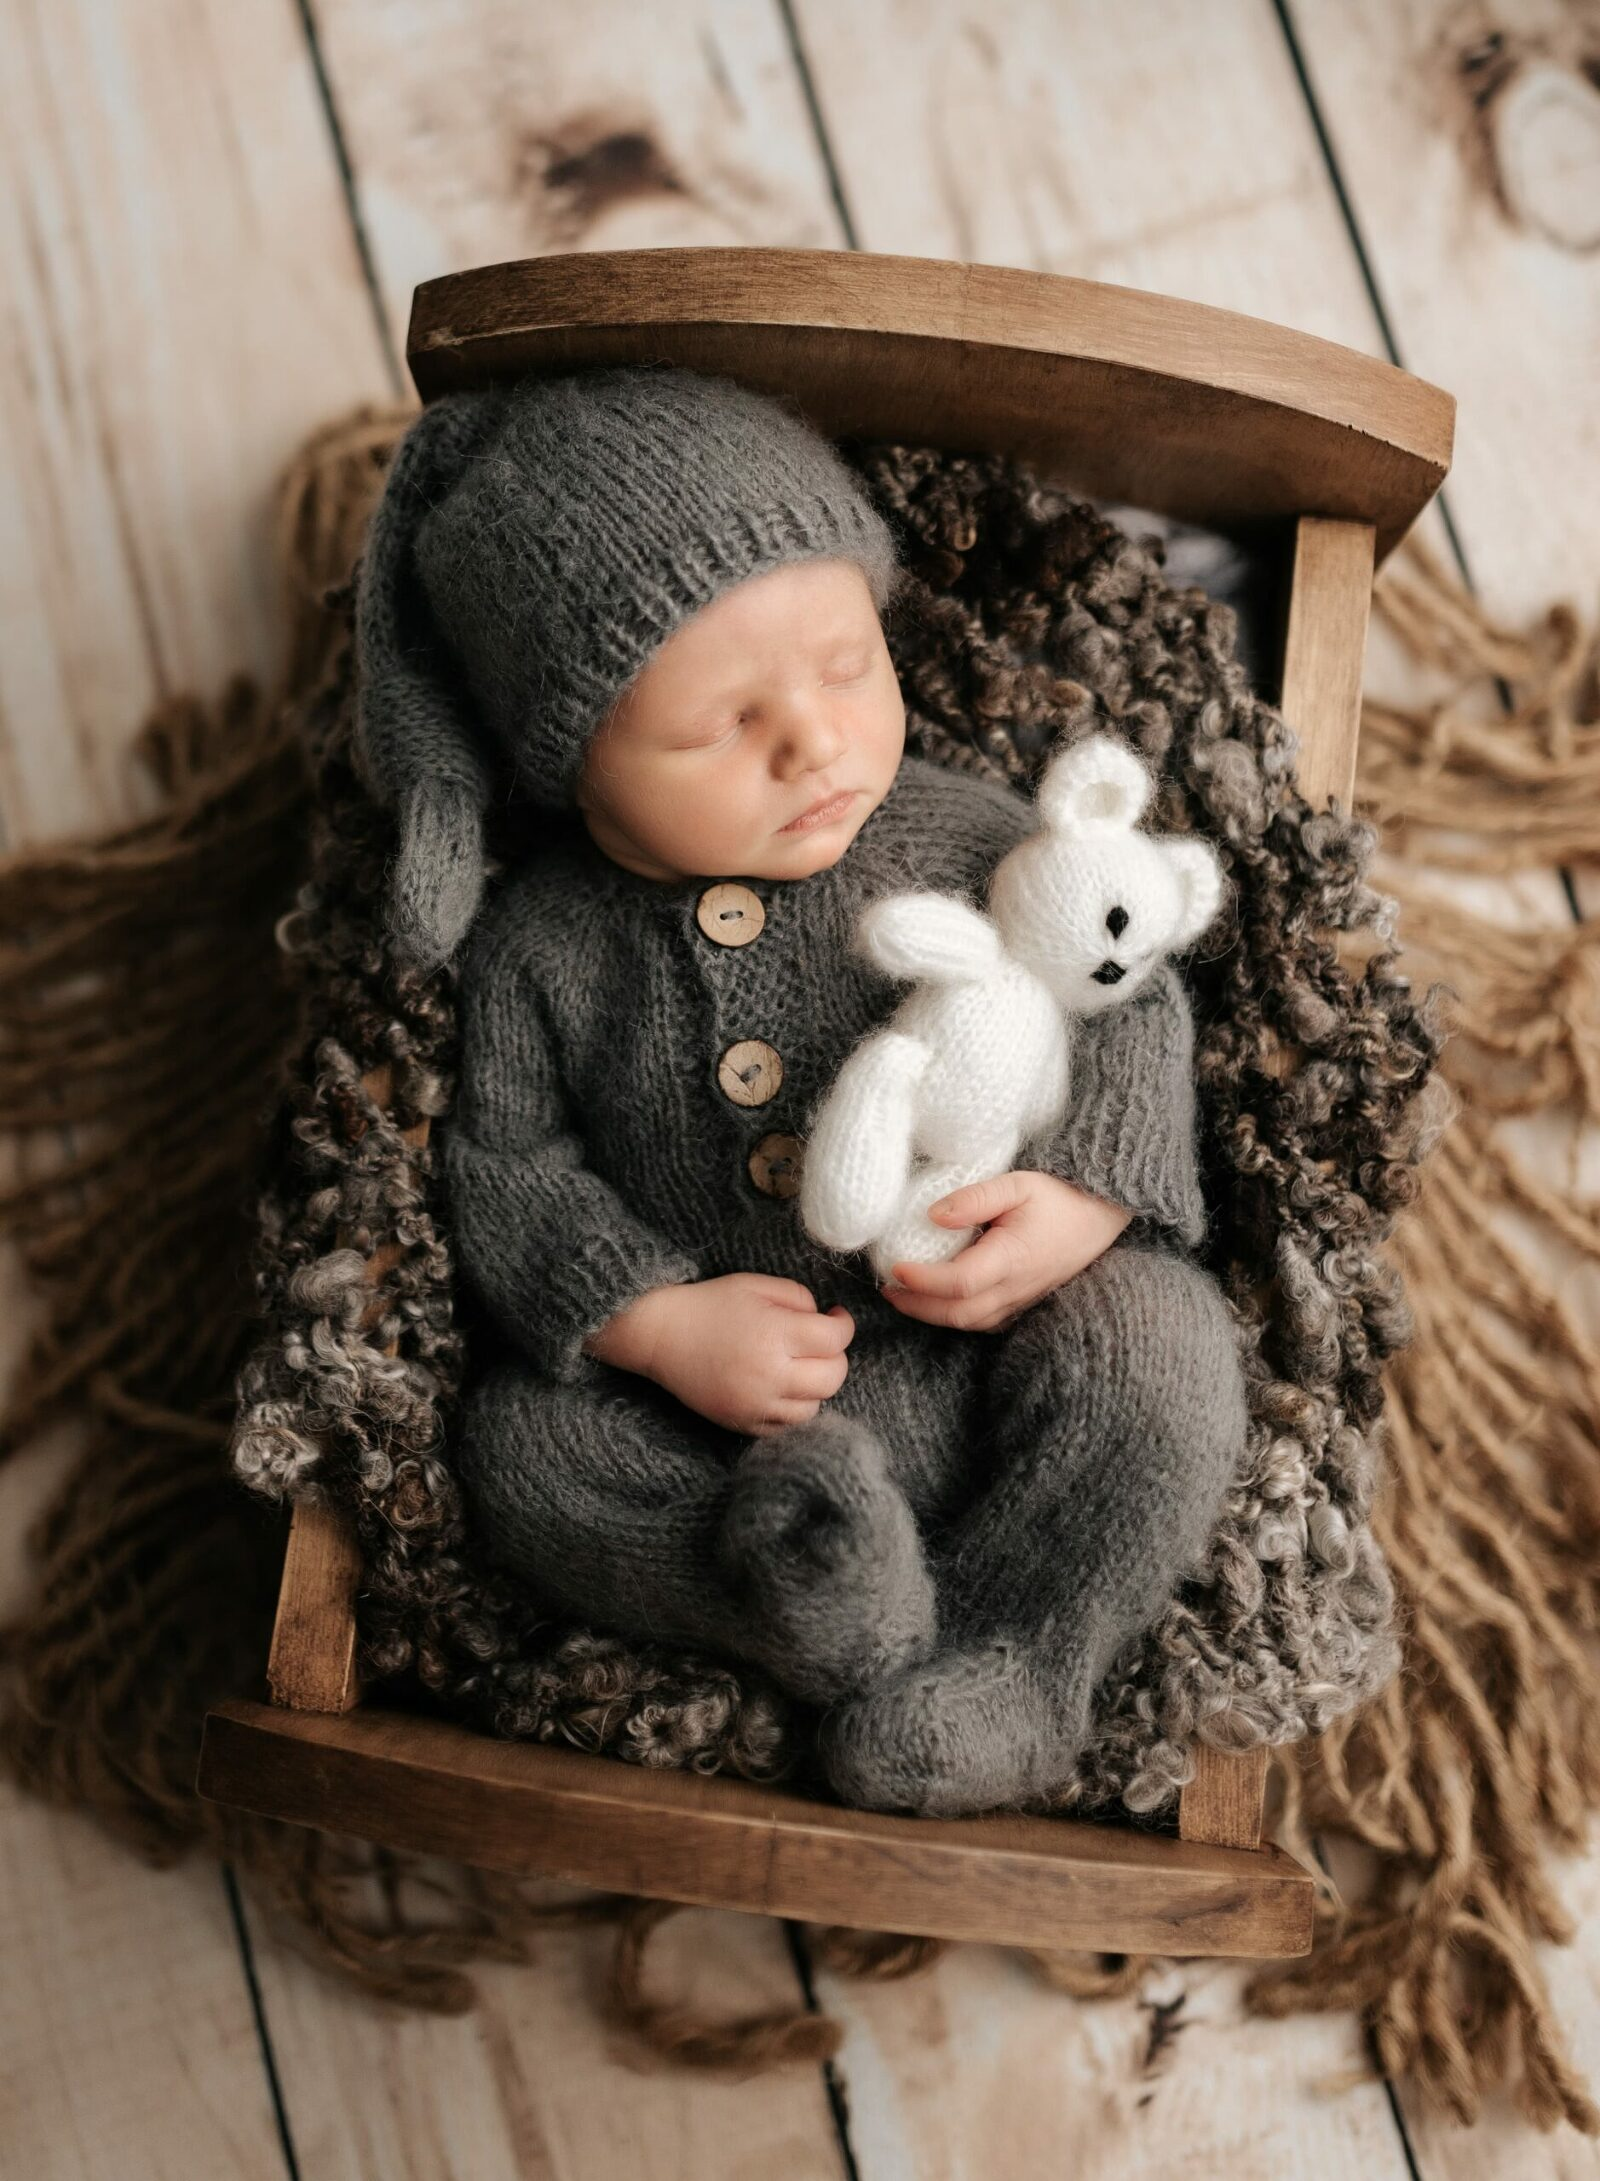 newborn baby boy in crib with sleepy cap and white teddy bear